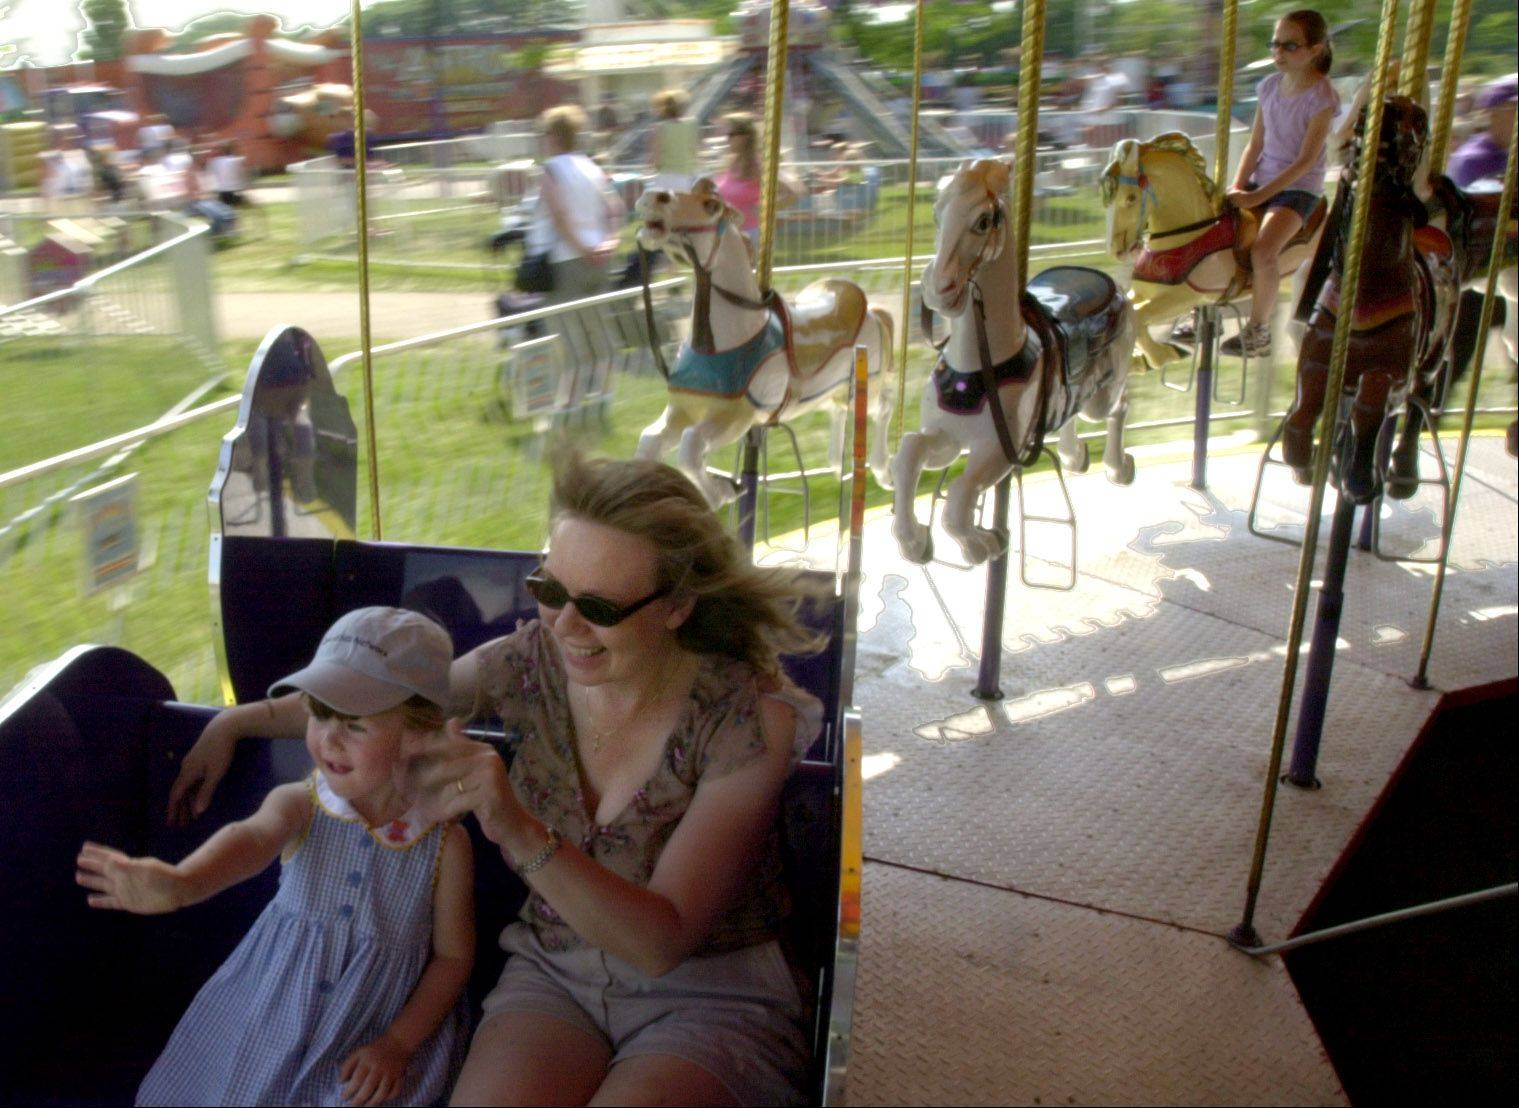 People ride the carousel at Bartlett's Fourth of July Festival at the Apple Orchard Community Park.